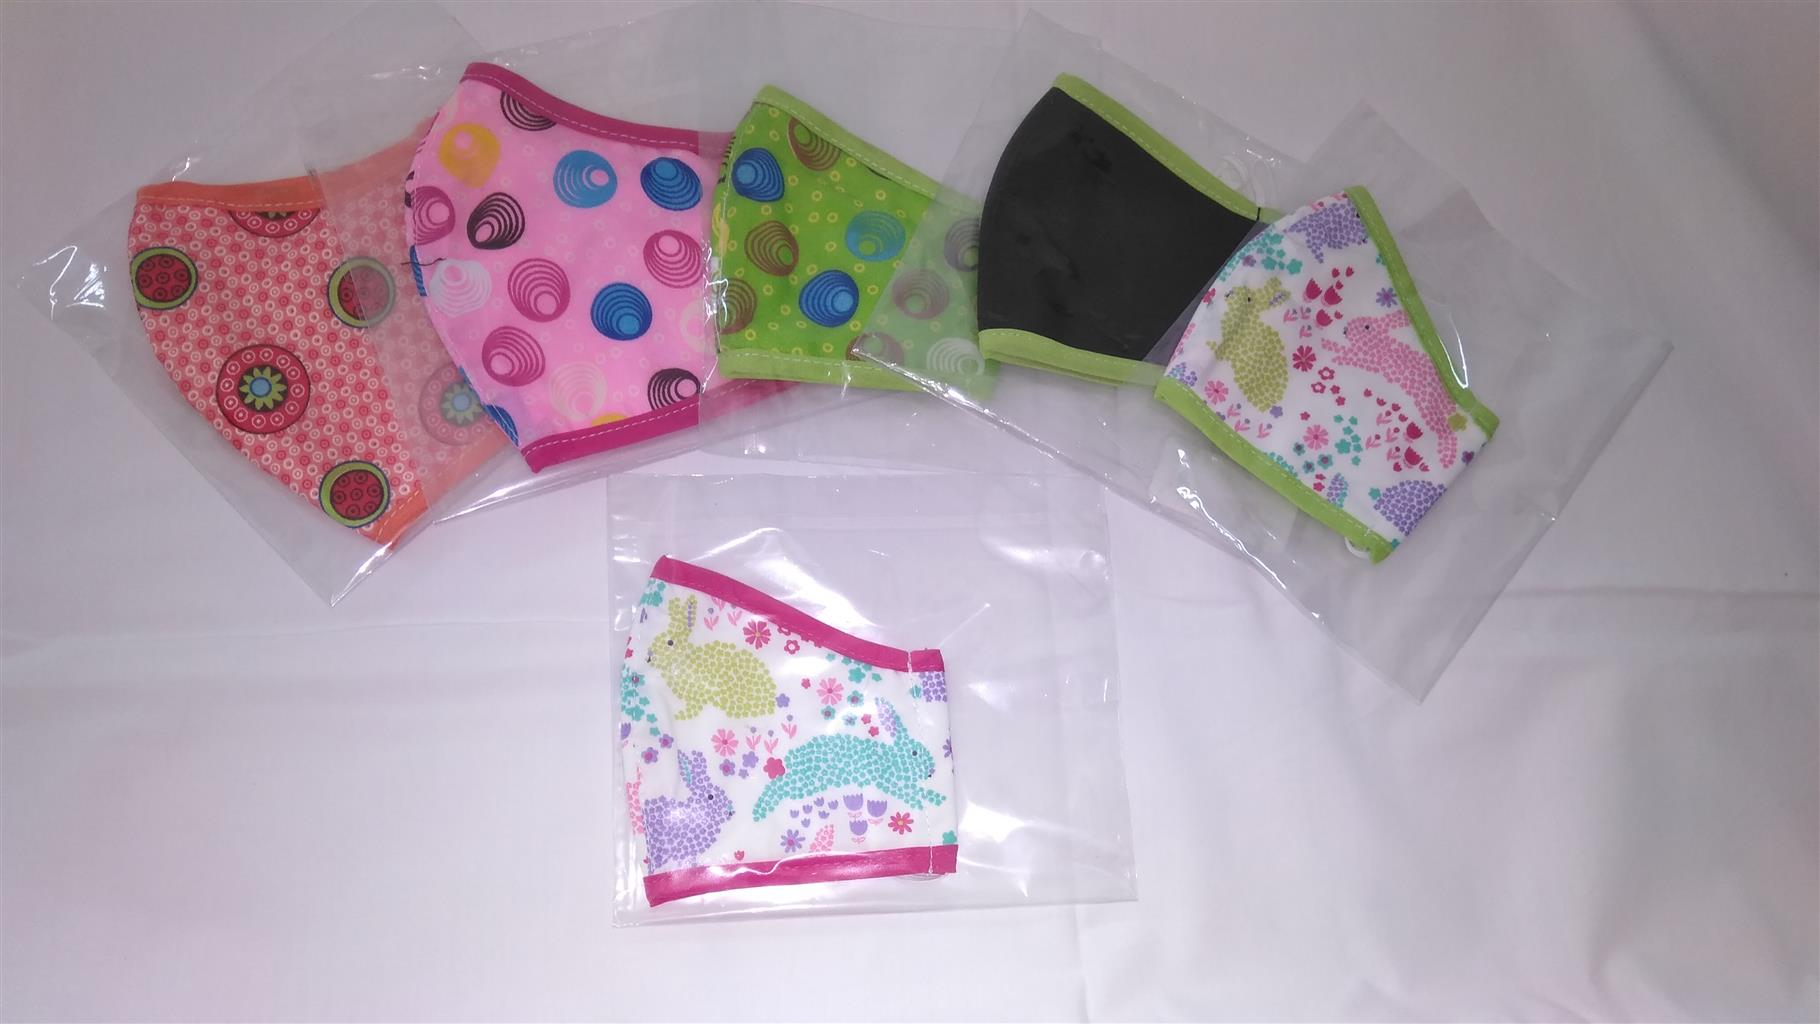 Re-usable 3 Layer Handmade Fabric Face Masks